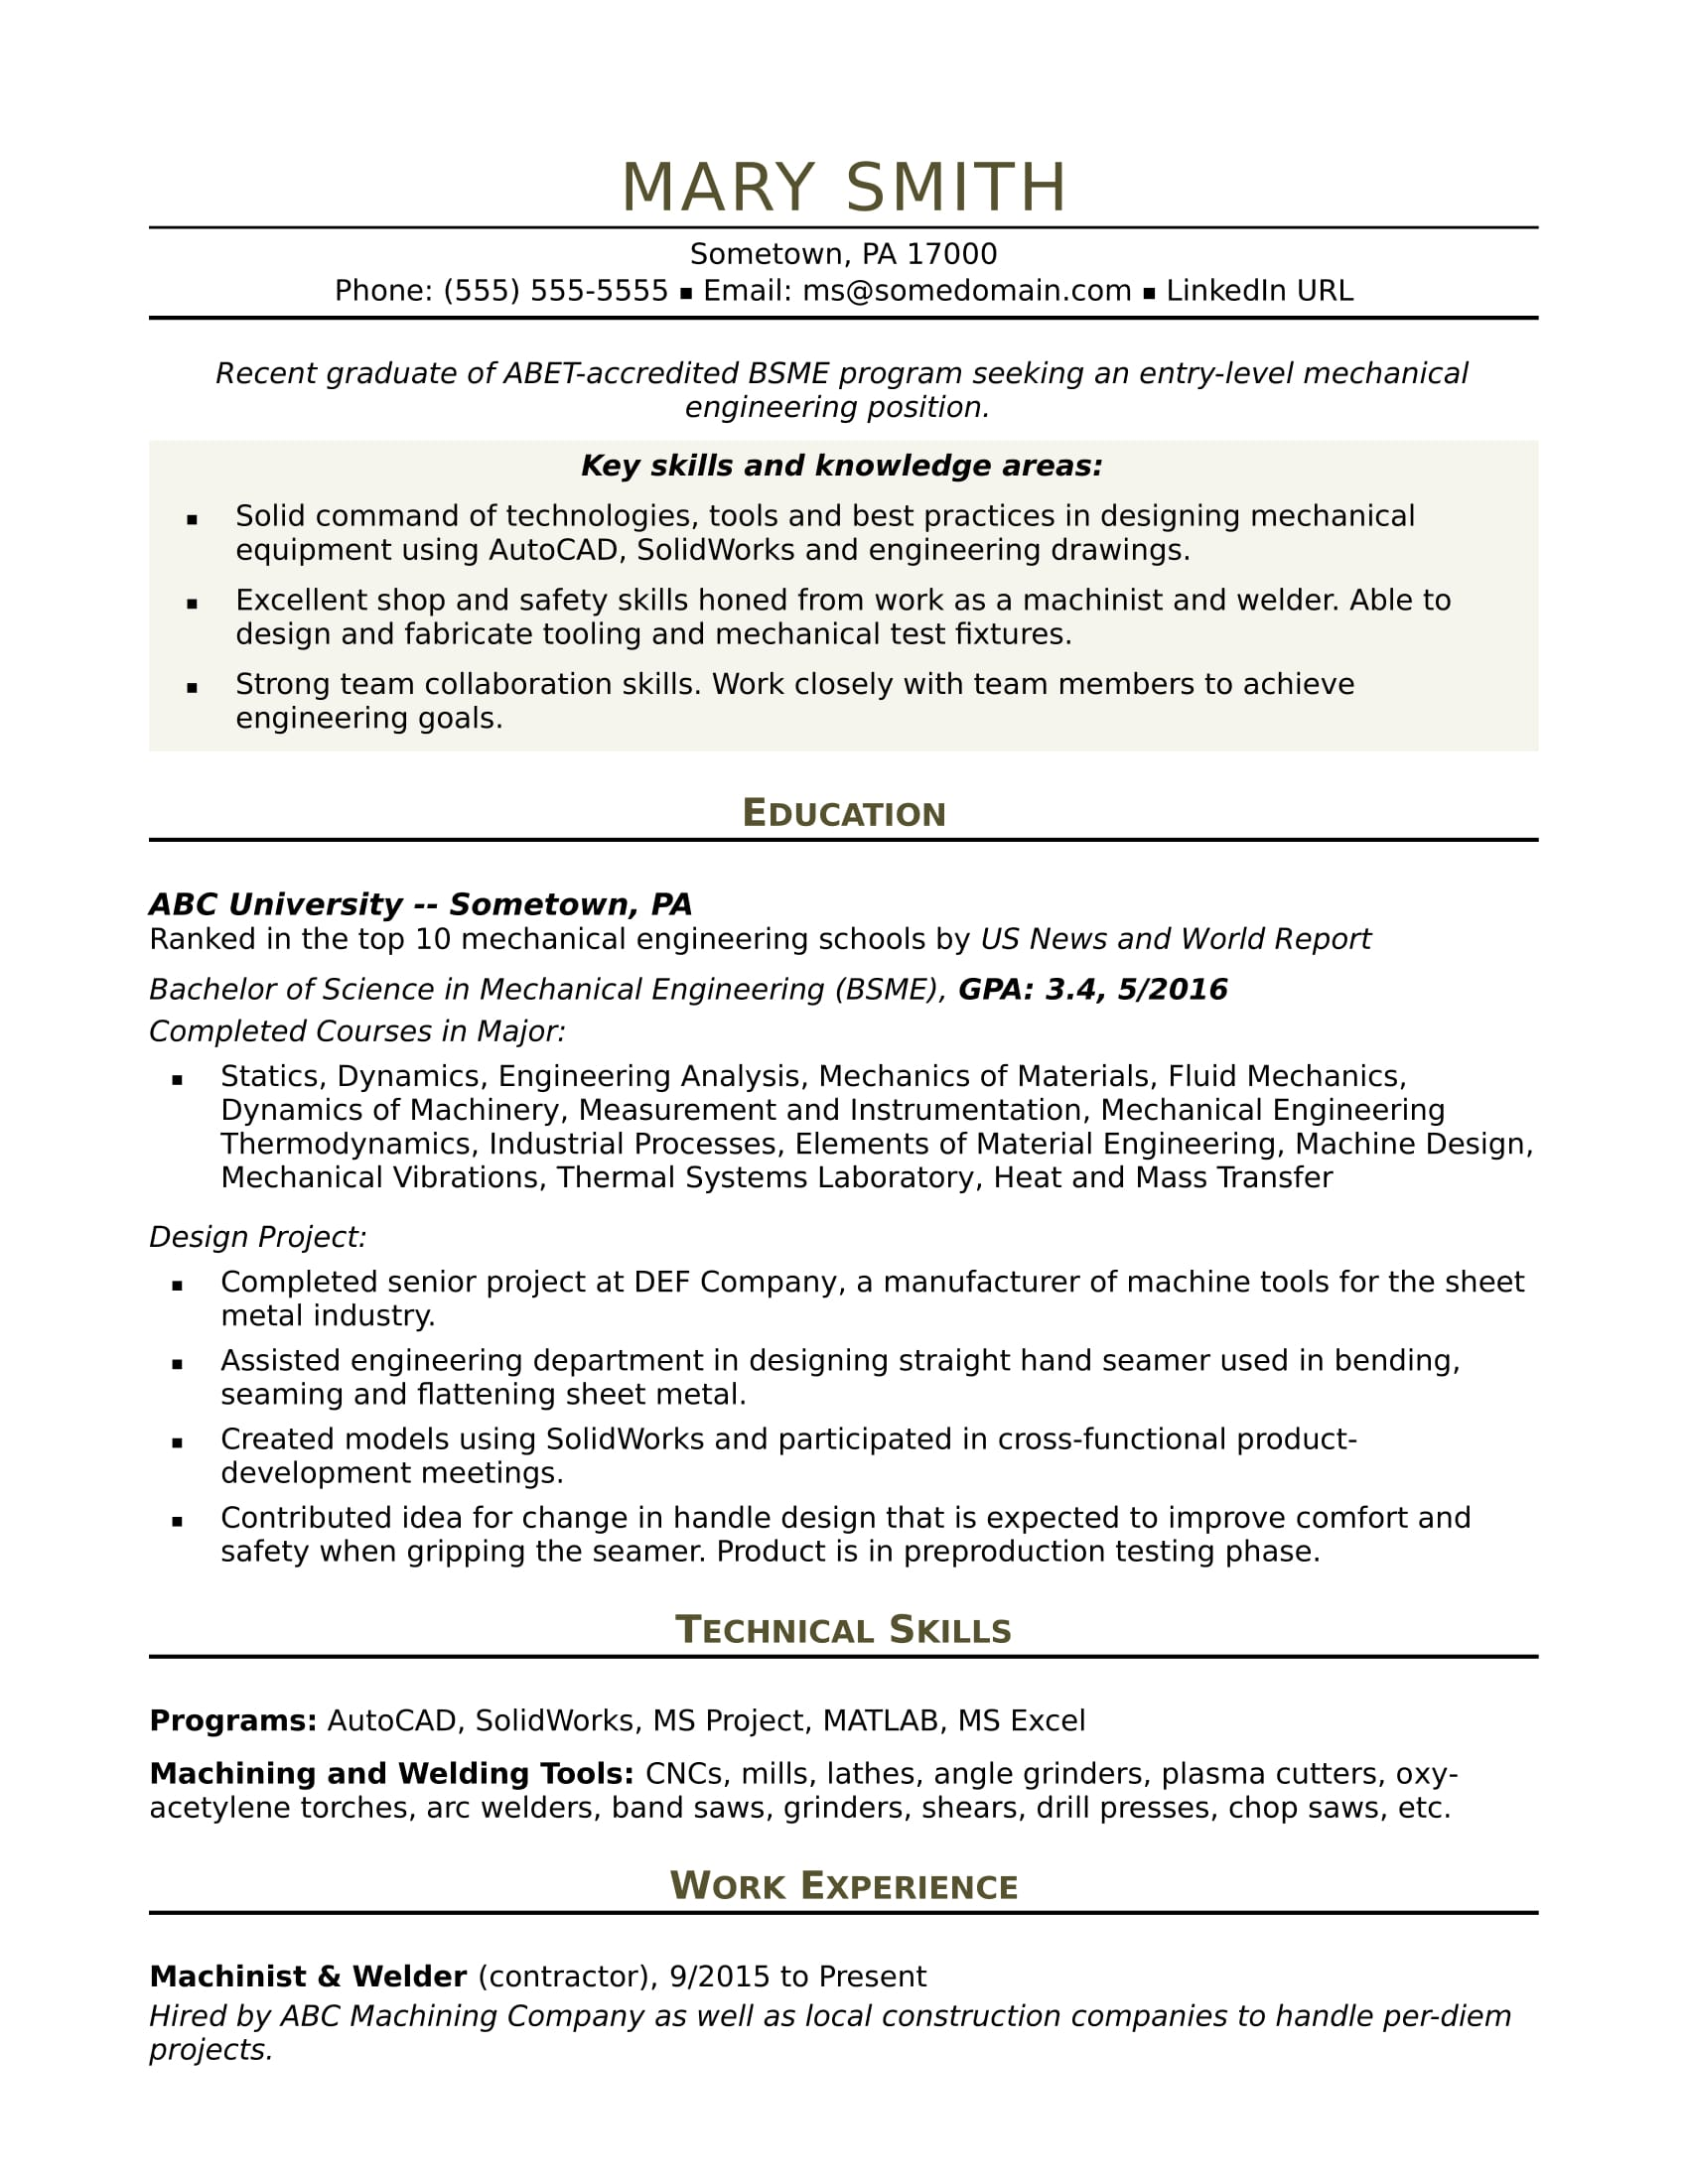 Marvelous Sample Resume For An Entry Level Mechanical Engineer